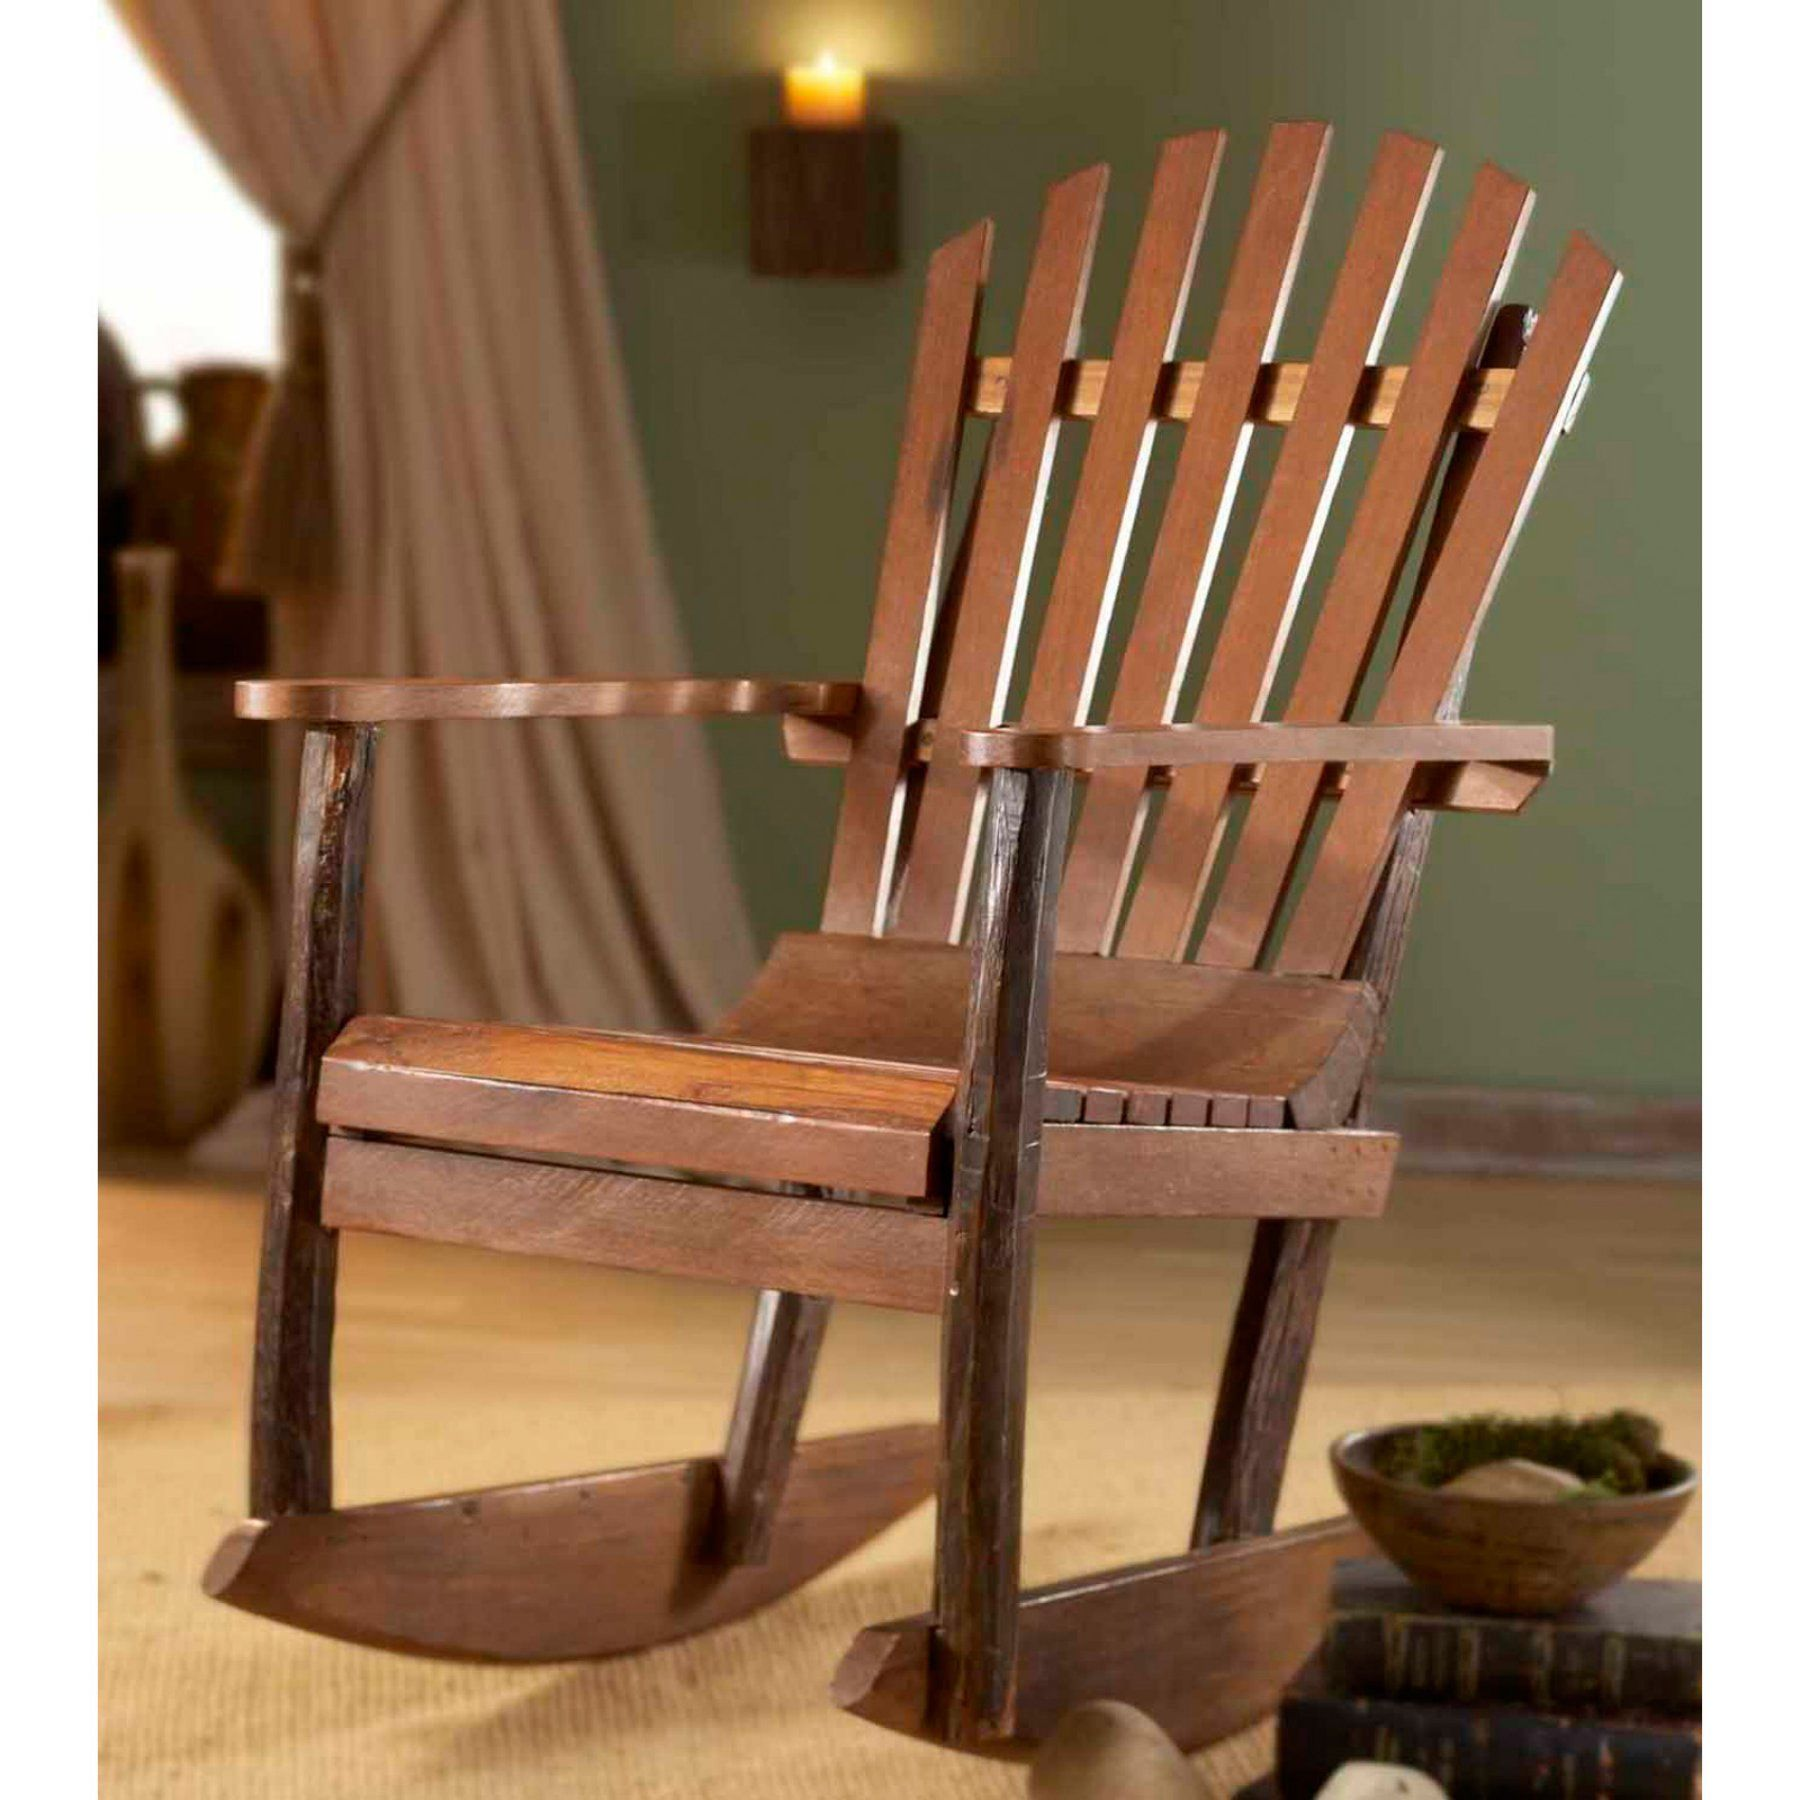 Outdoor Groovystuff Teak Wood Adirondack Rocking Chair